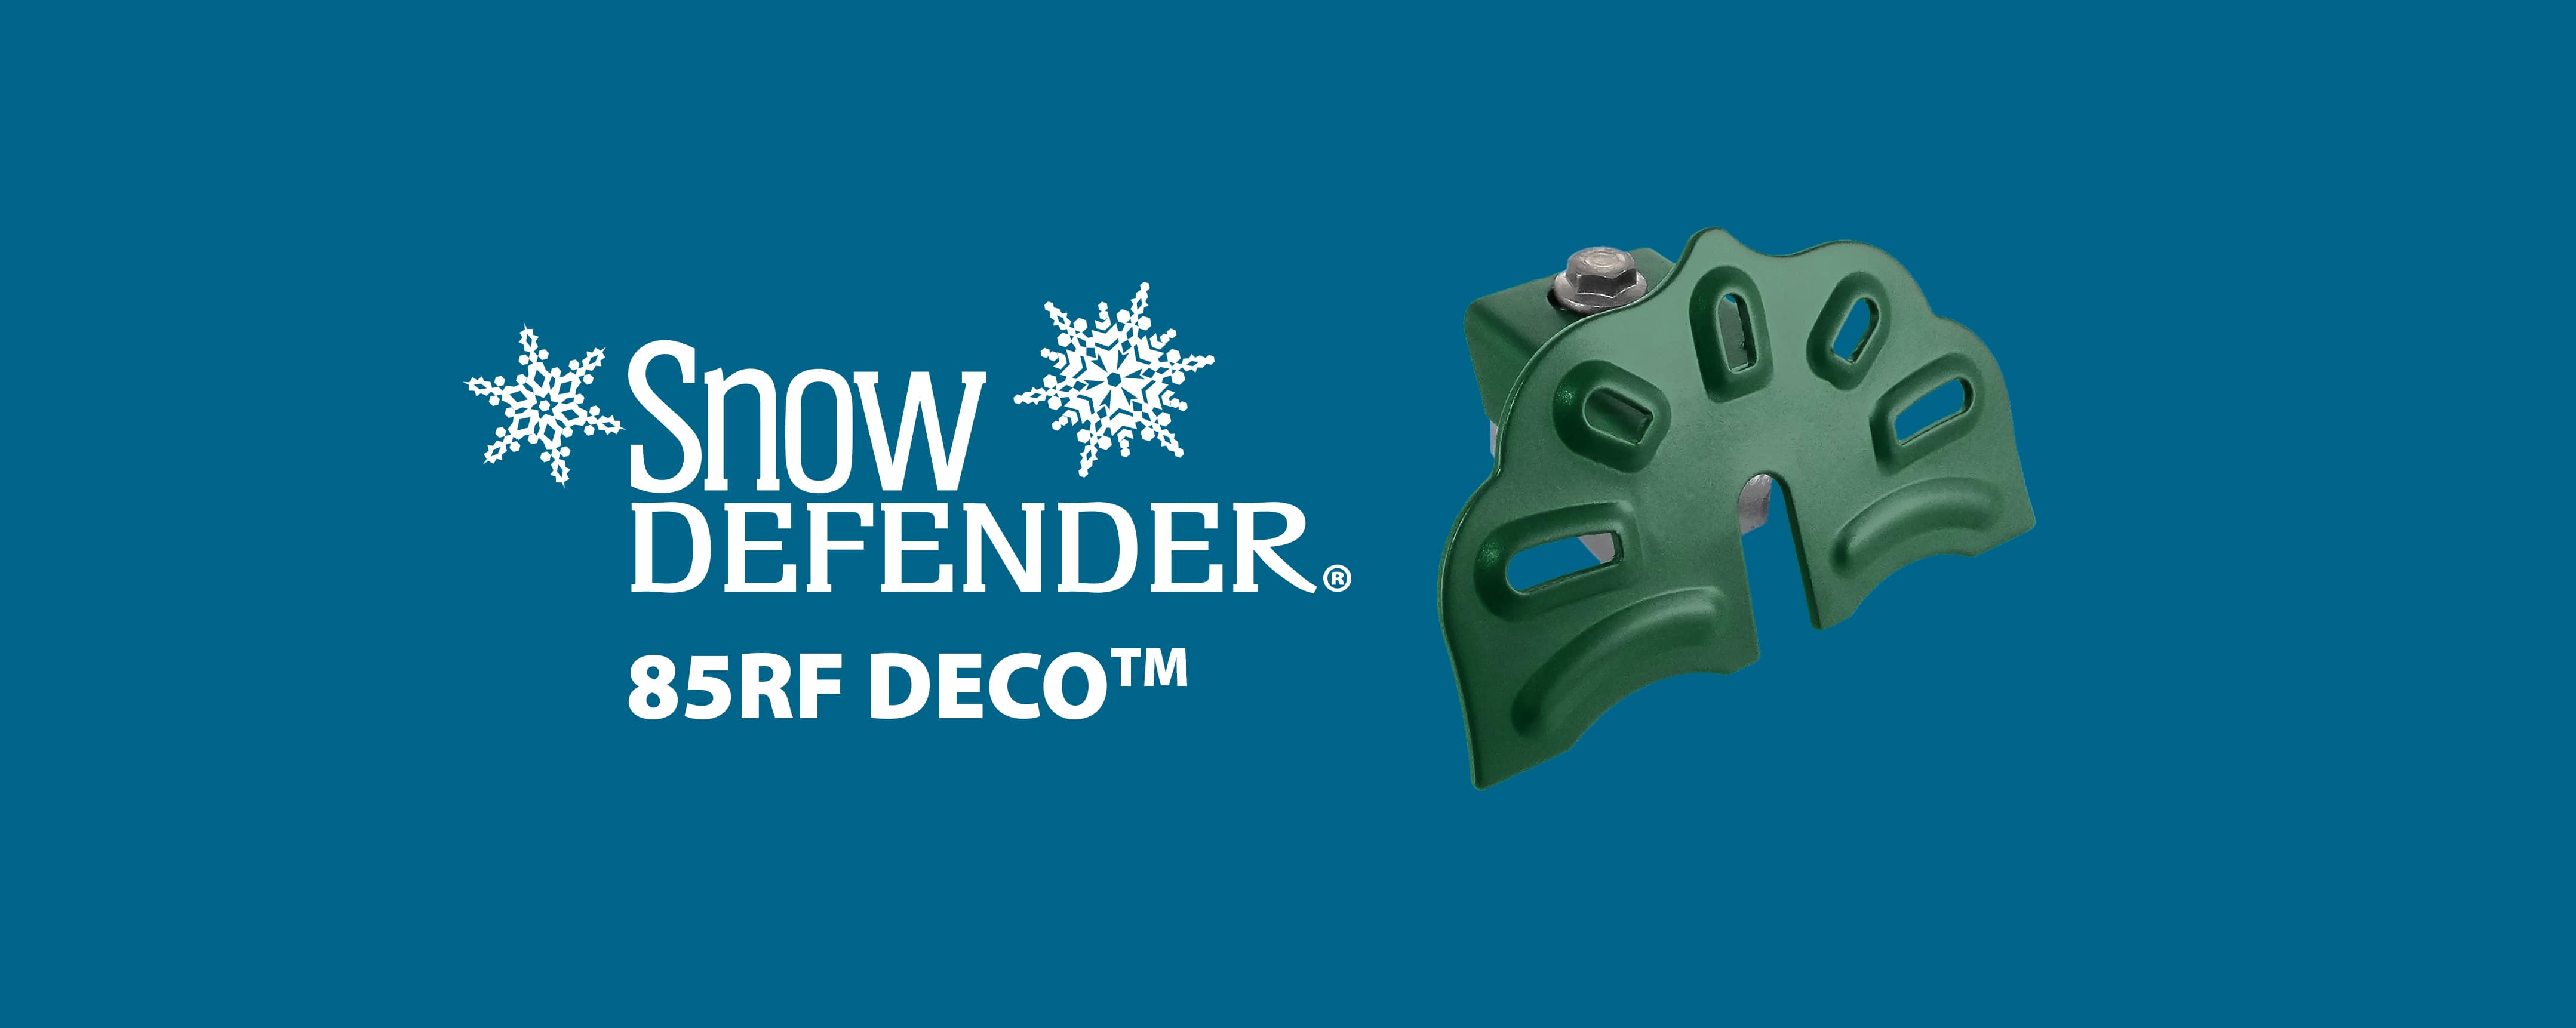 Snow Defender snow guard 85RF DECO for metal roofing and metal panel